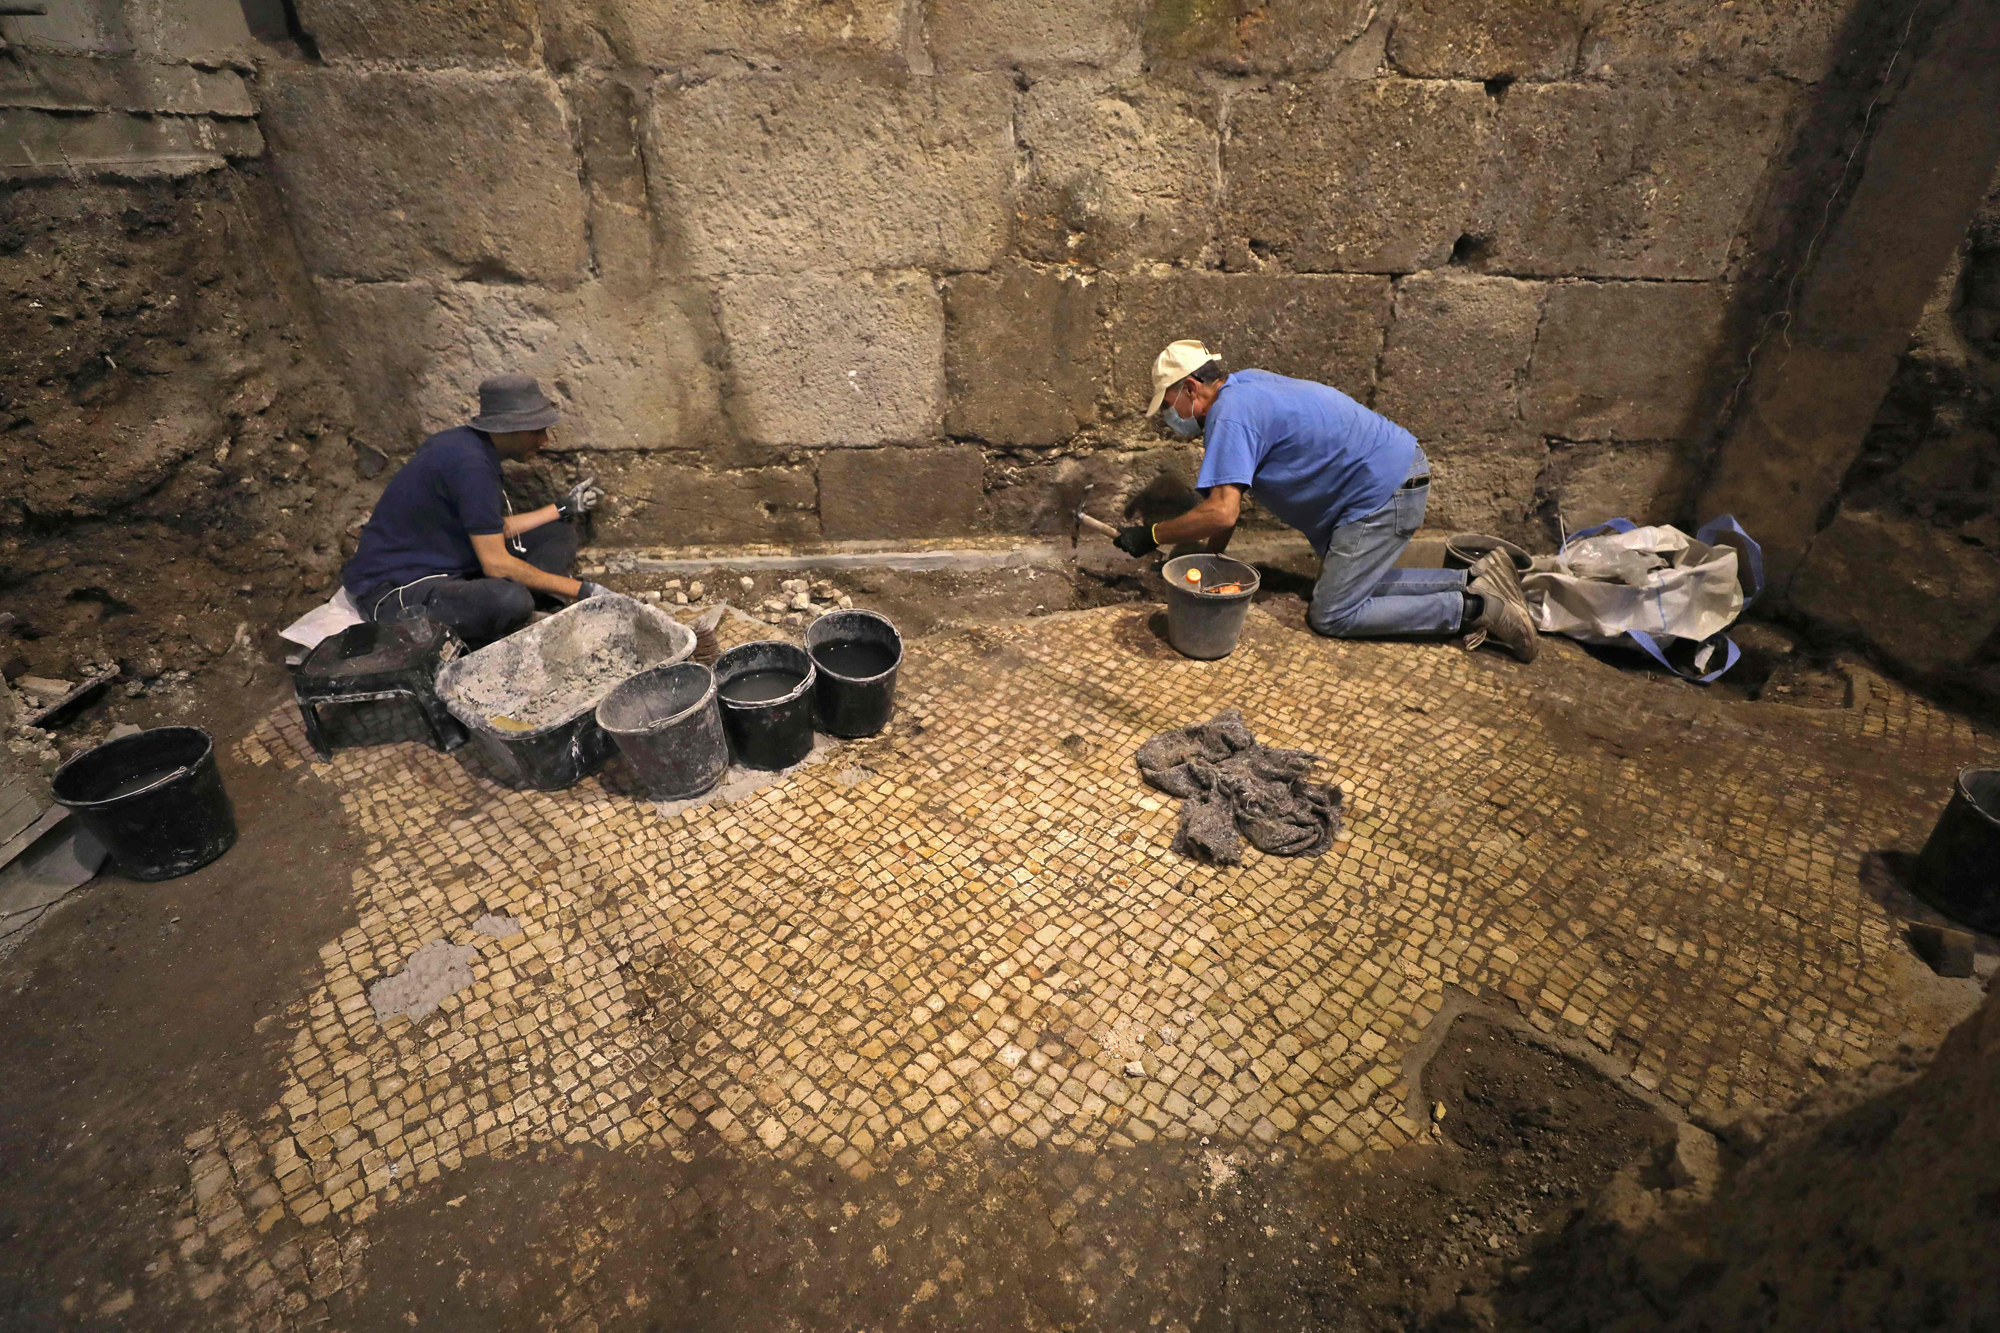 Archaeologists of the Israel Antiquities Authority work at an excavation at a subterranean system hewn in the bedrock beneath a 1400-year-old building near the Western Wall in Jerusalem's Old City, on May 19, 2020. (Photo by MENAHEM KAHANA / AFP)